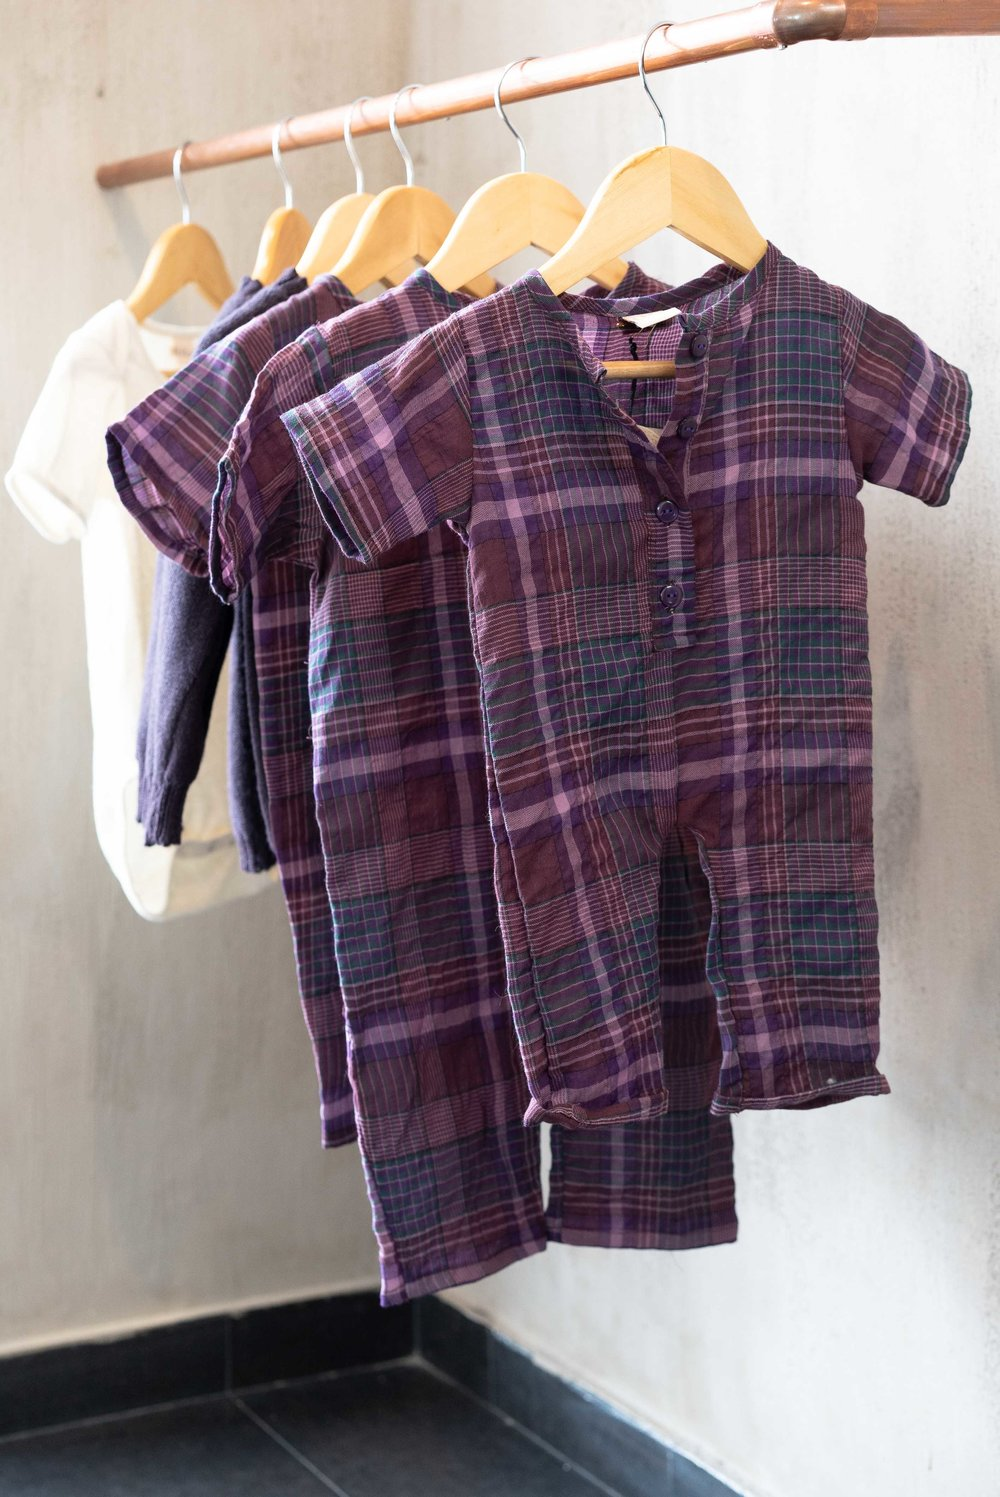 Leda's baby clothes serve as an eco-friendly solution to textile waste.